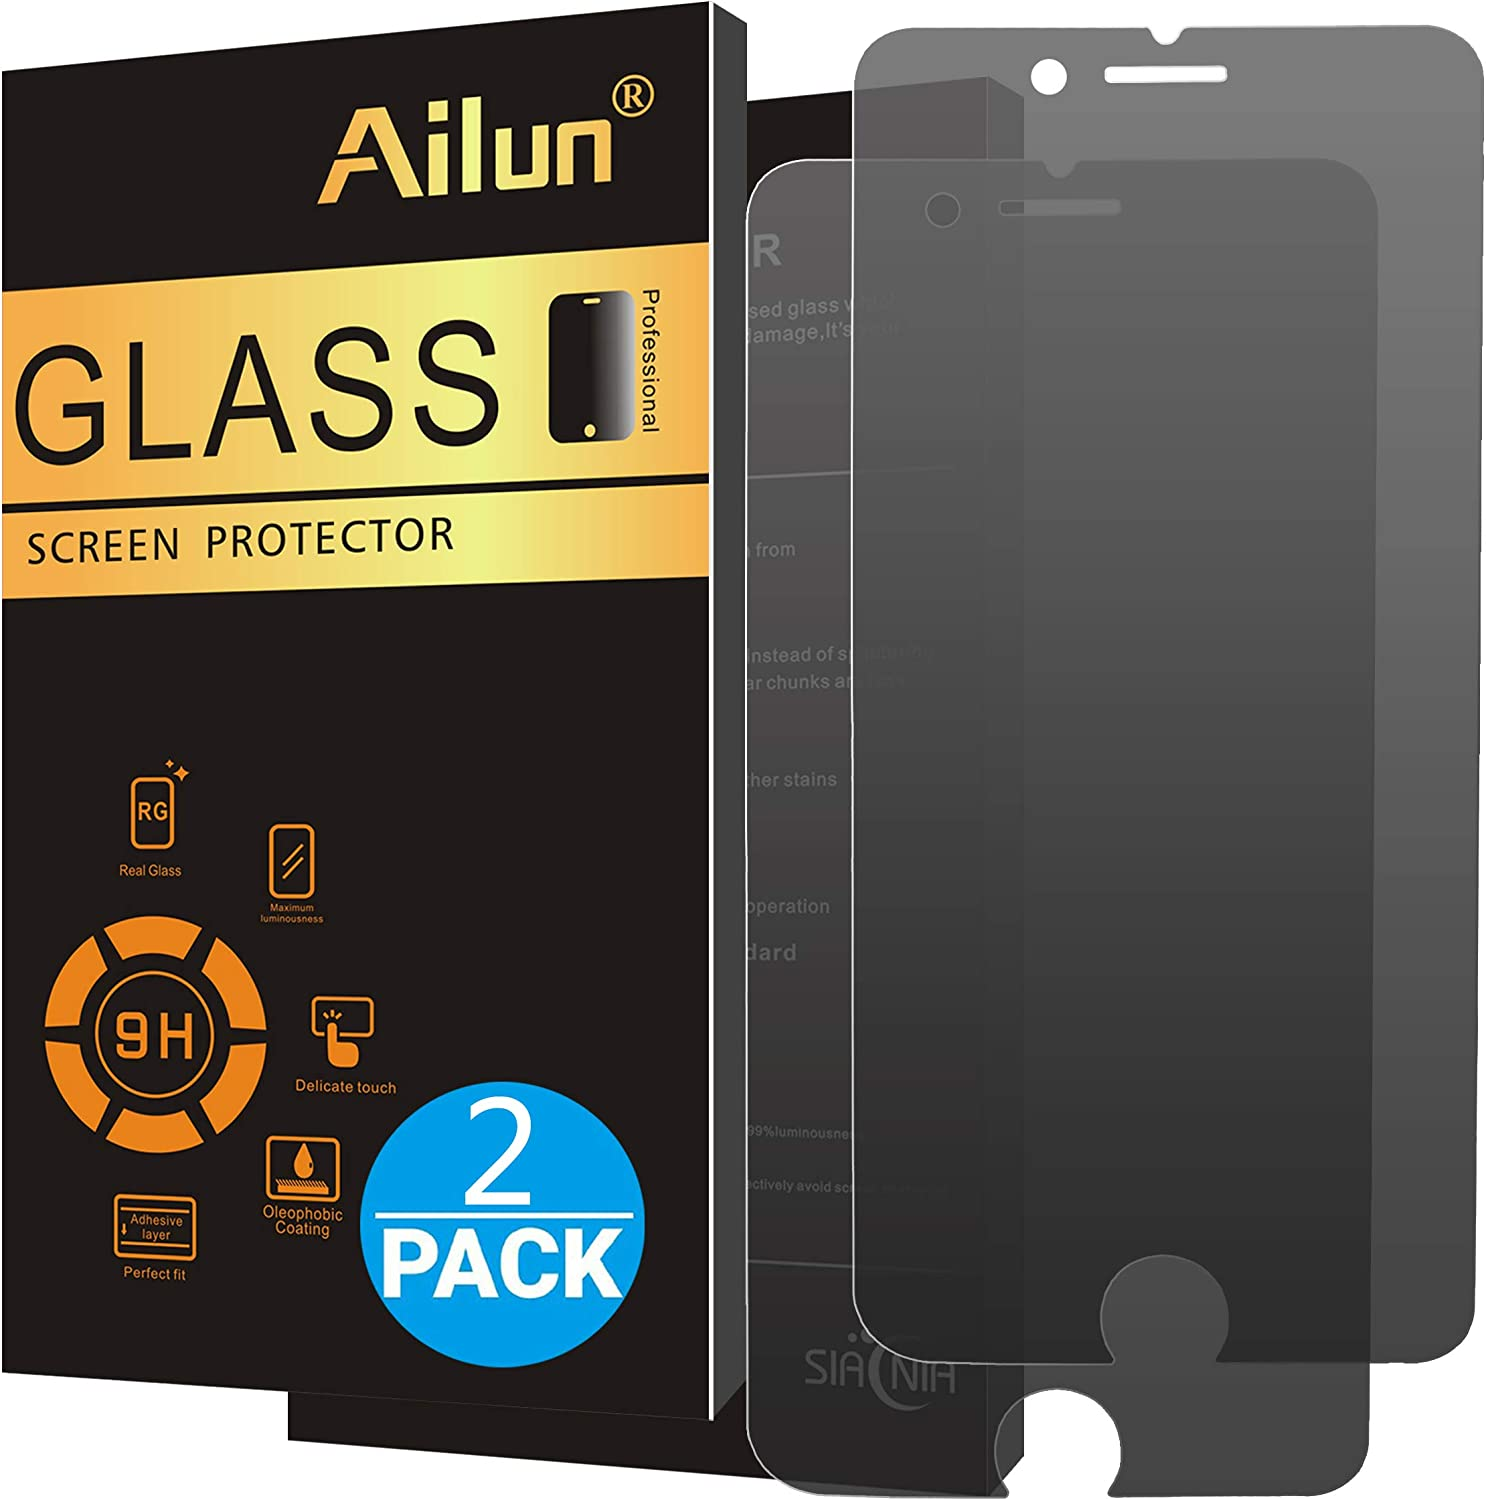 Ailun Privacy Screen Protector Compatible with iPhone 8 Plus 7 Plus 2Pack Anti Spy Anti Glare Japanese Glass 0.25MM Tempered Glass Compatible with iPhone 8 Plus 7 Plus Anti Scratch Case Friendly